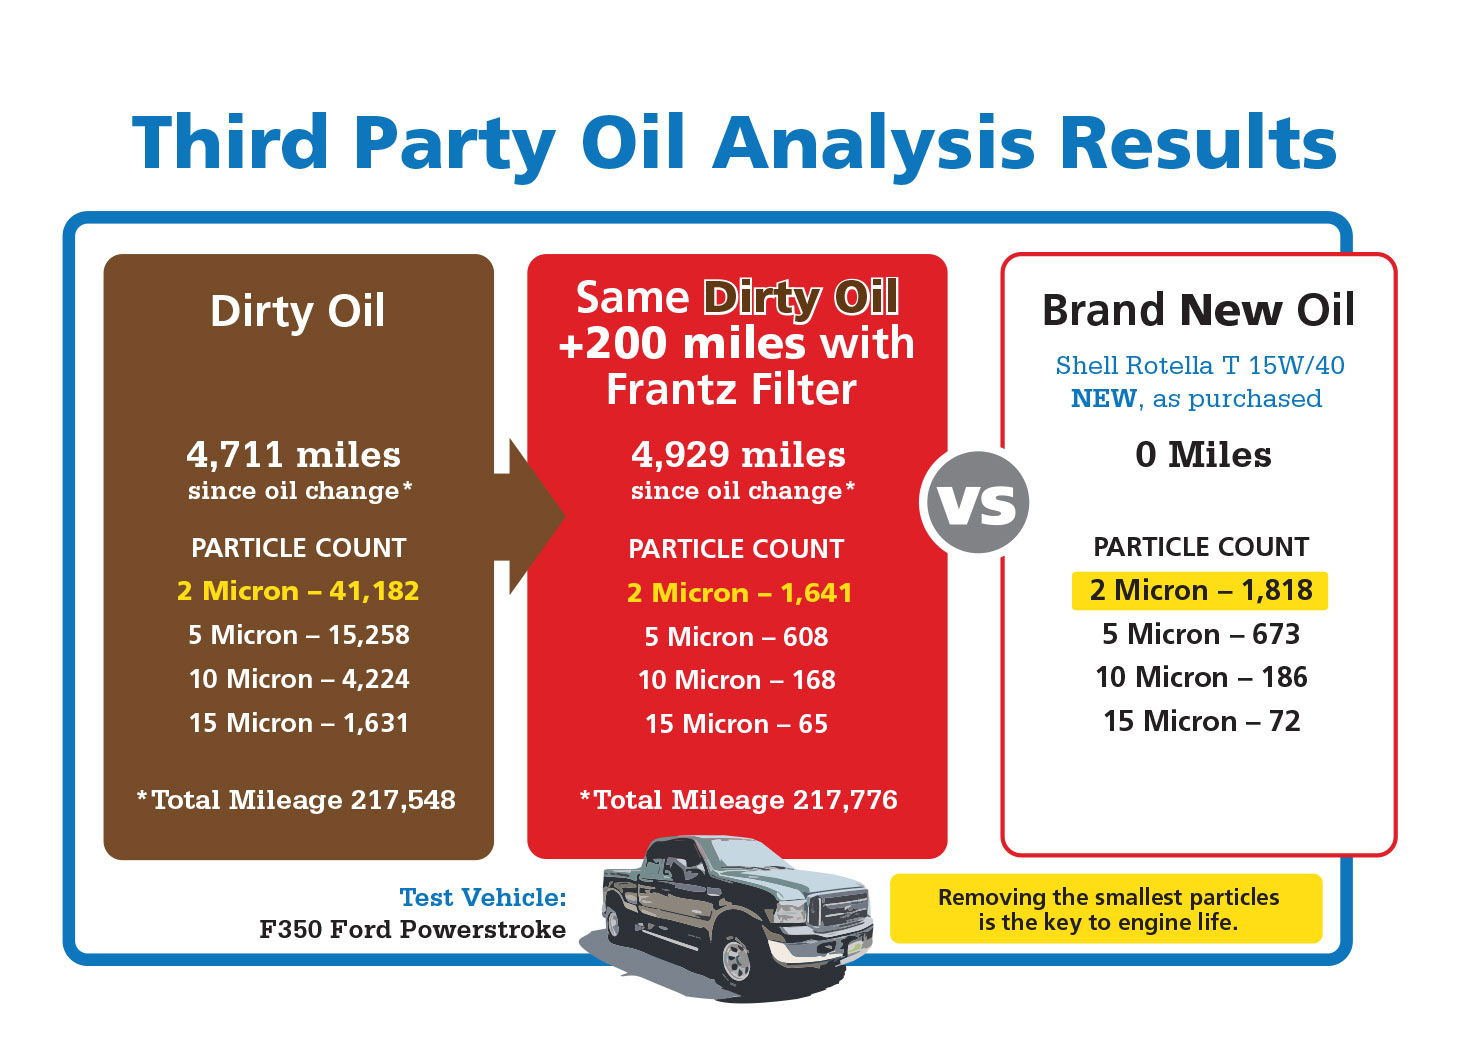 Oil seal conversion chart gallery free any chart examples oil seal conversion chart image collections free any chart examples oil seal conversion chart image collections nvjuhfo Image collections